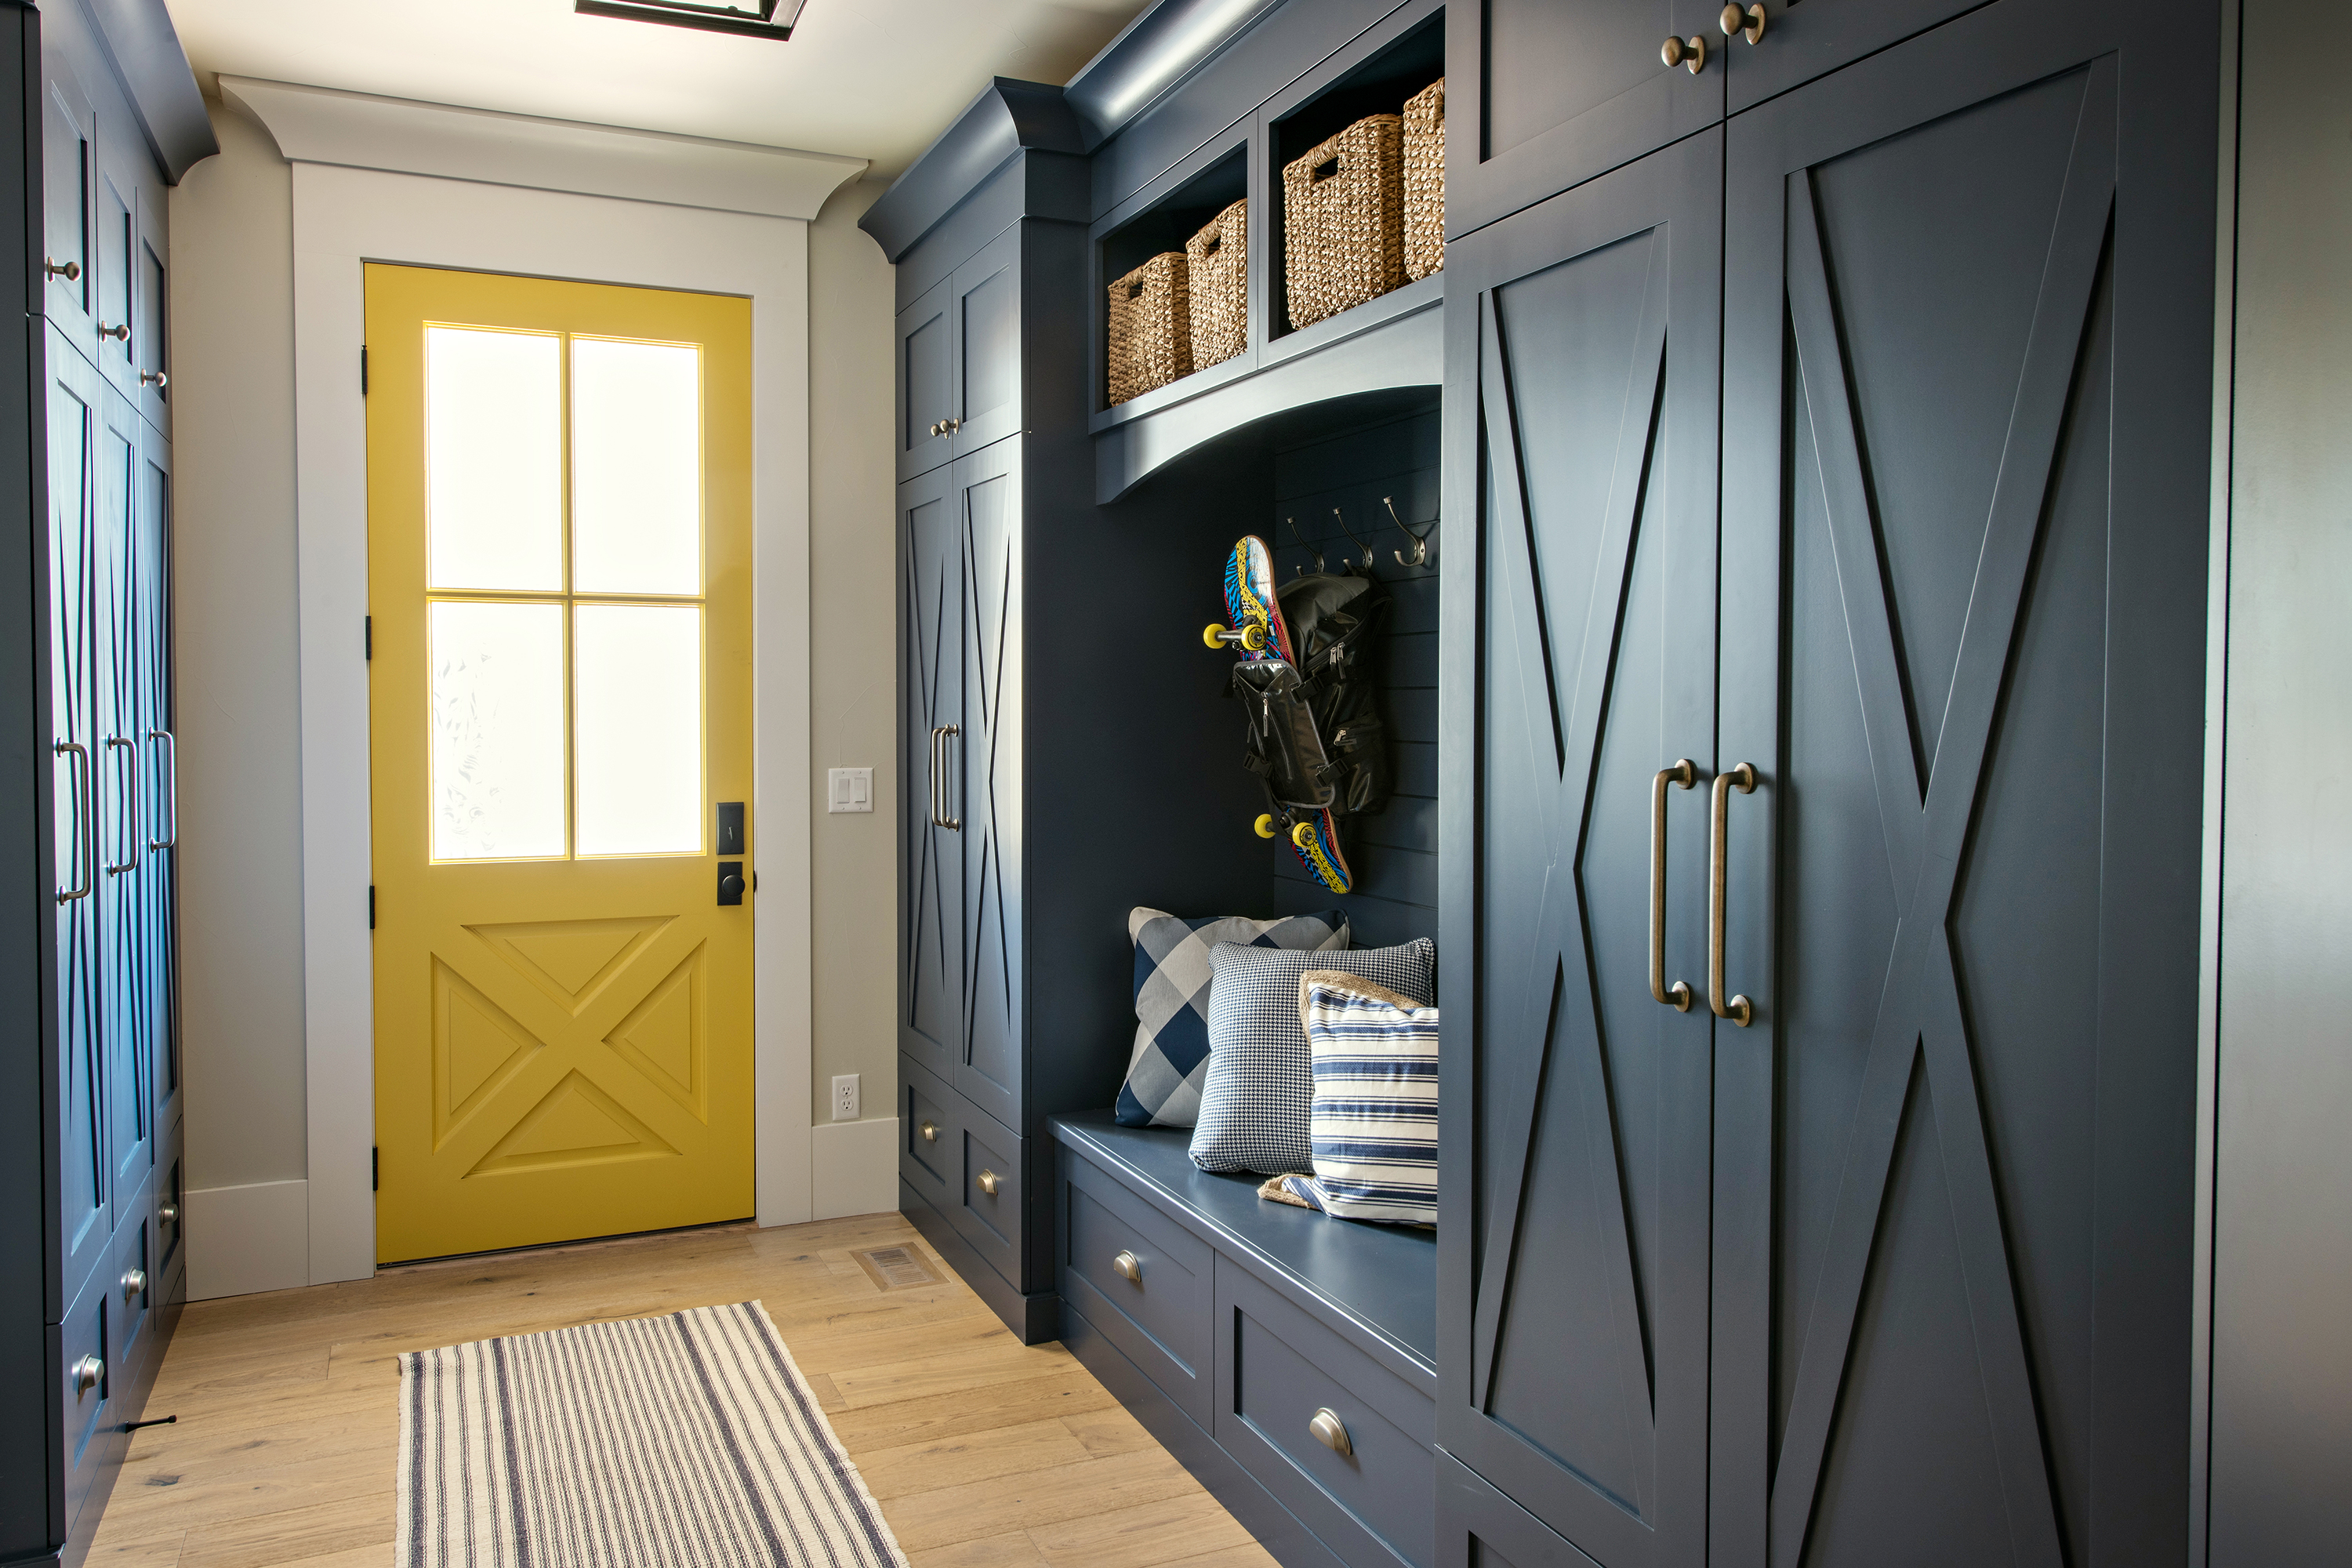 Mudroom with built in cabinets and storage with a yellow door.